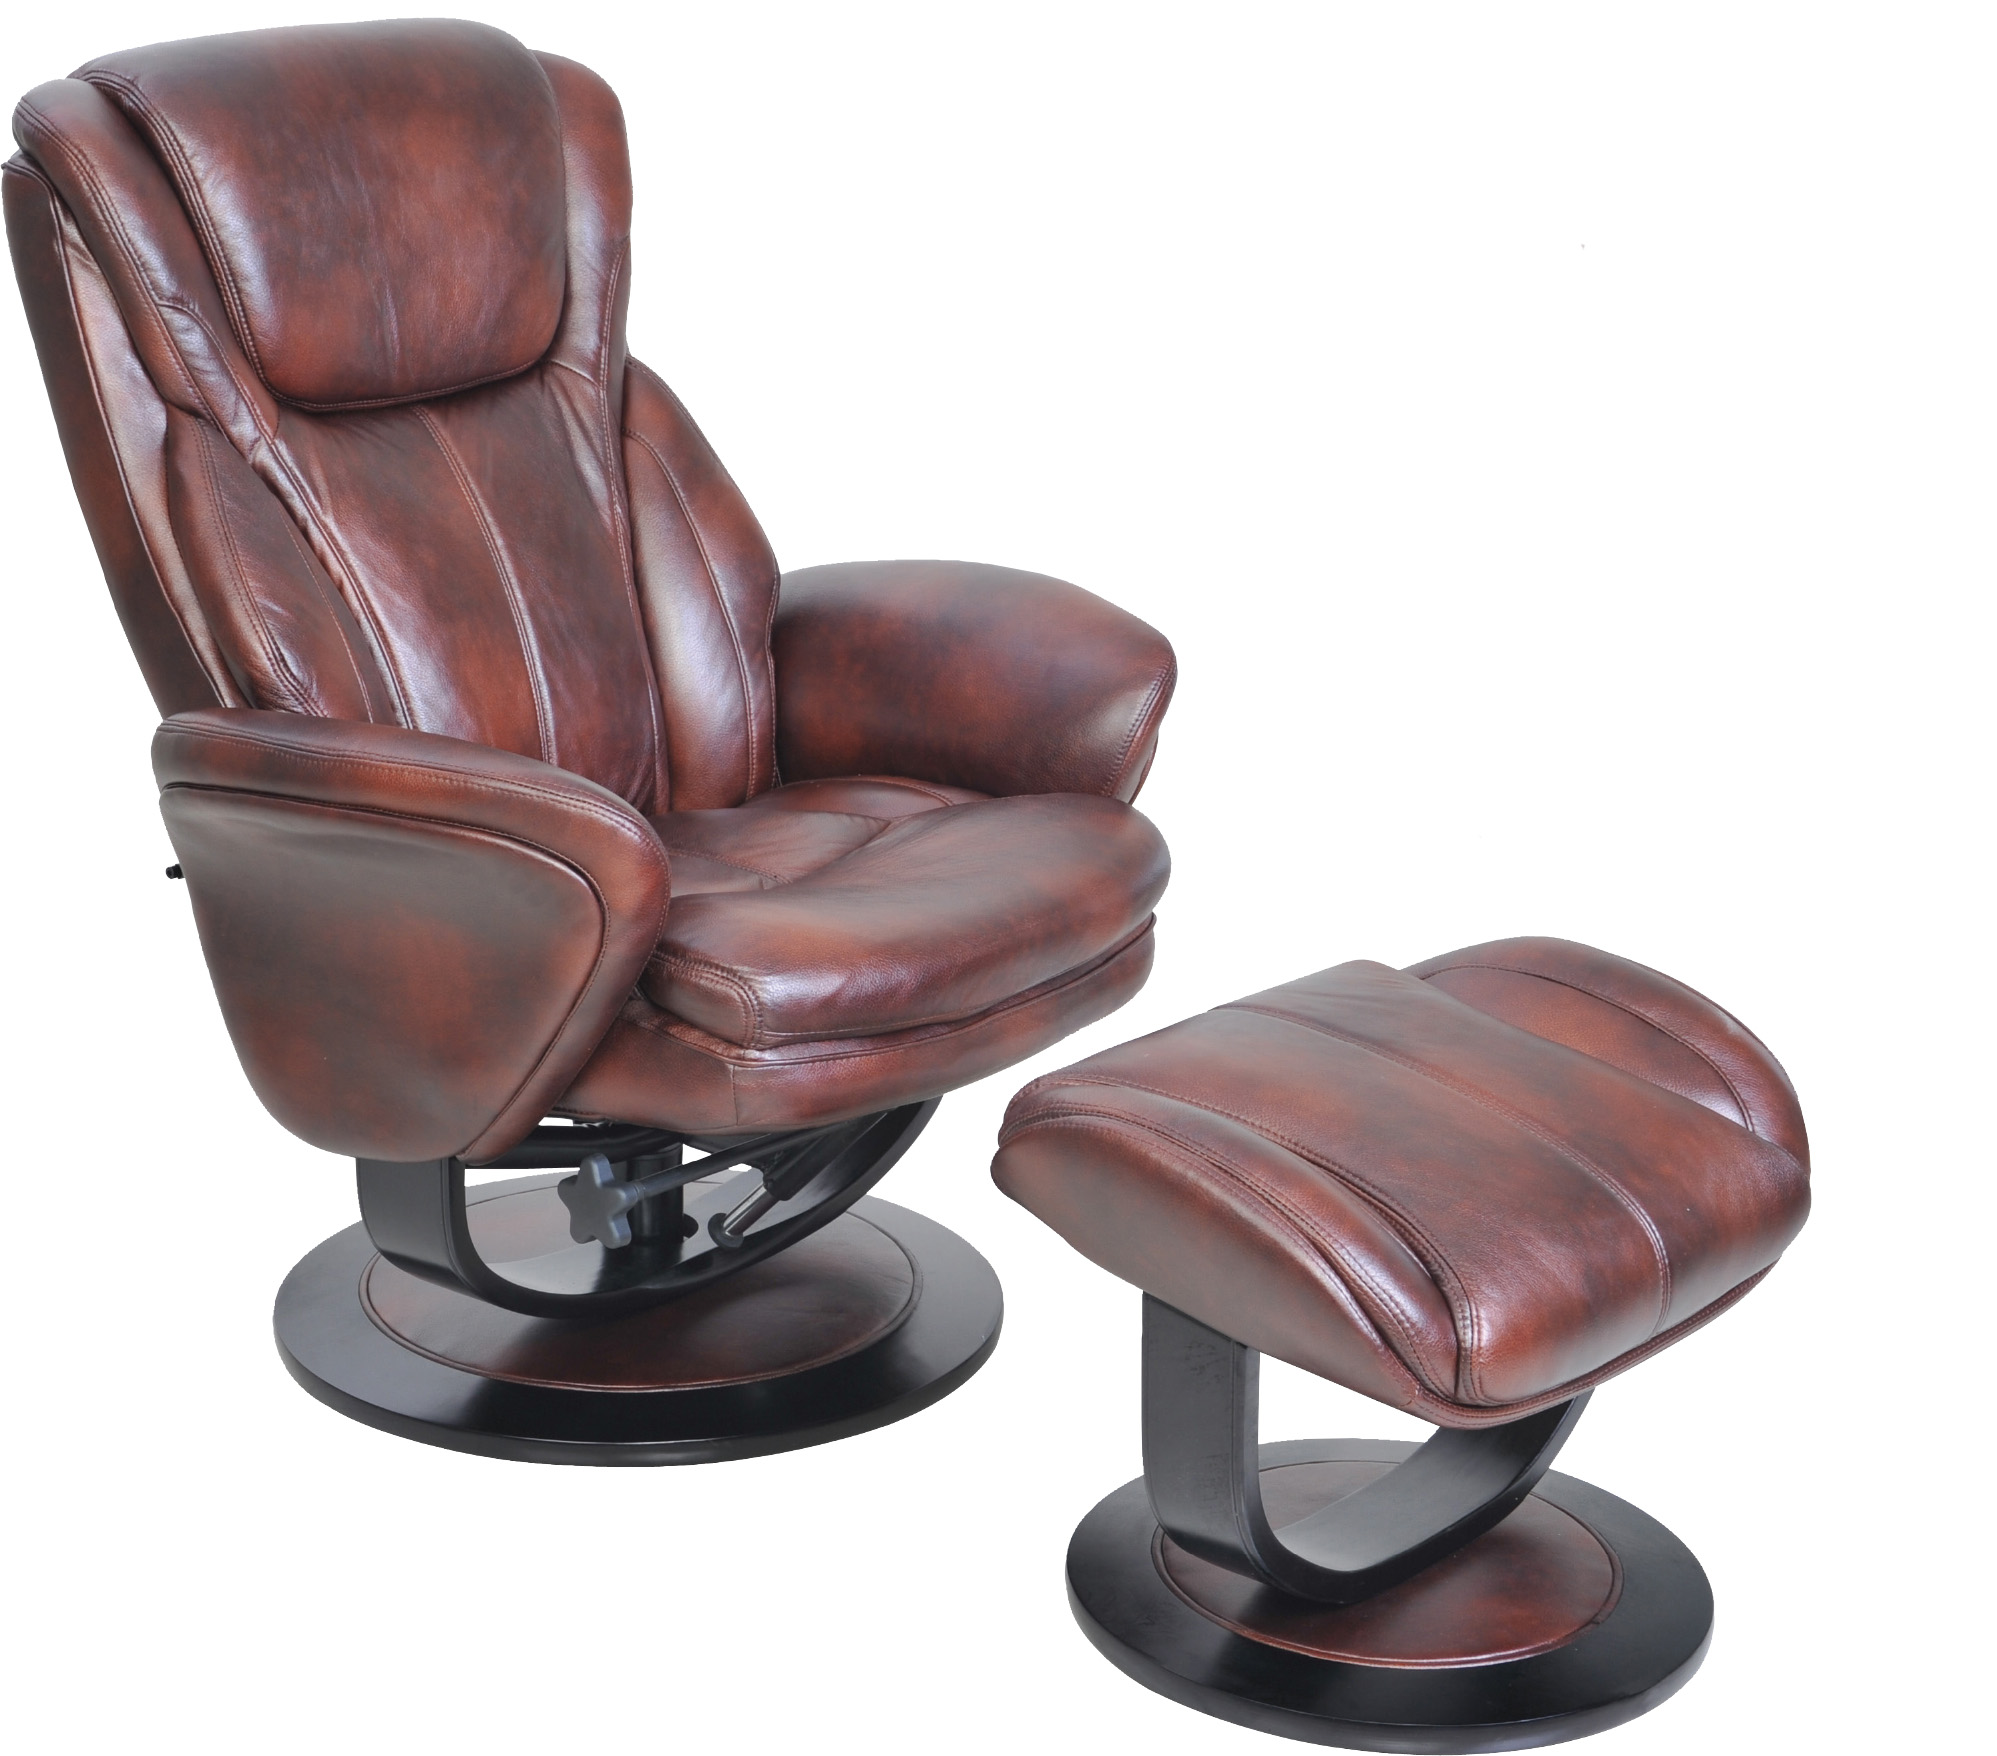 barcalounger roma ii leather recliner chair and ottoman. beautiful ideas. Home Design Ideas